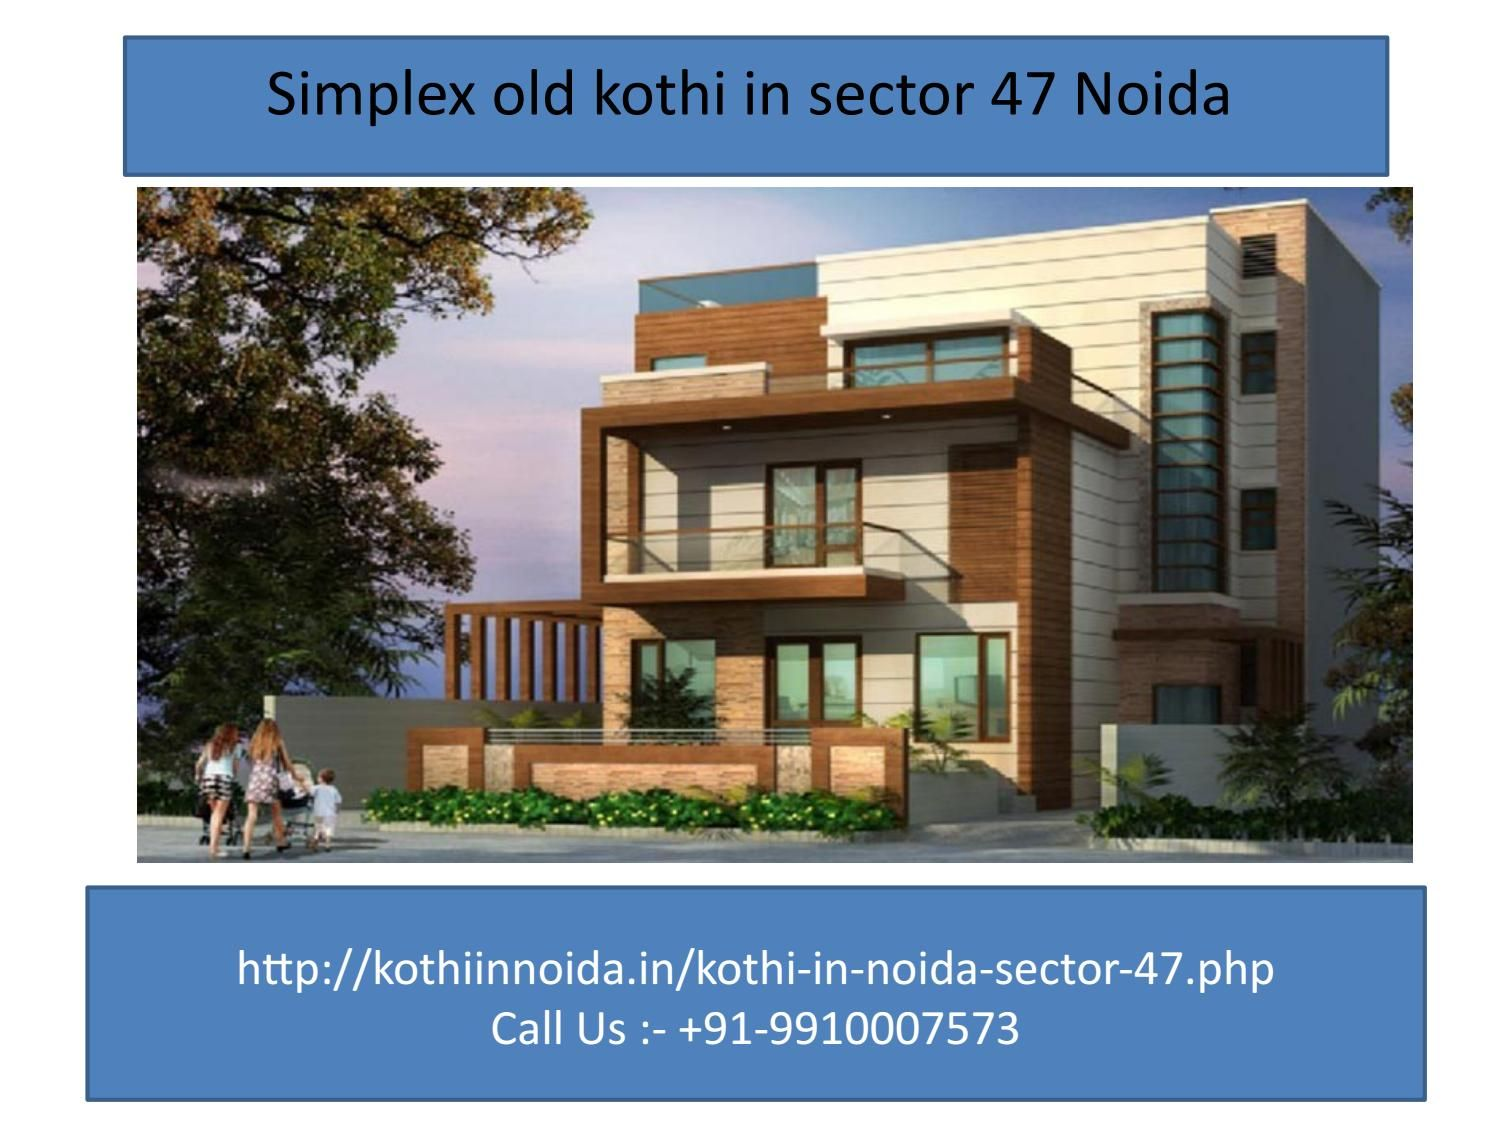 Brand new simplex kothi in sector 47 noida, 9910007573